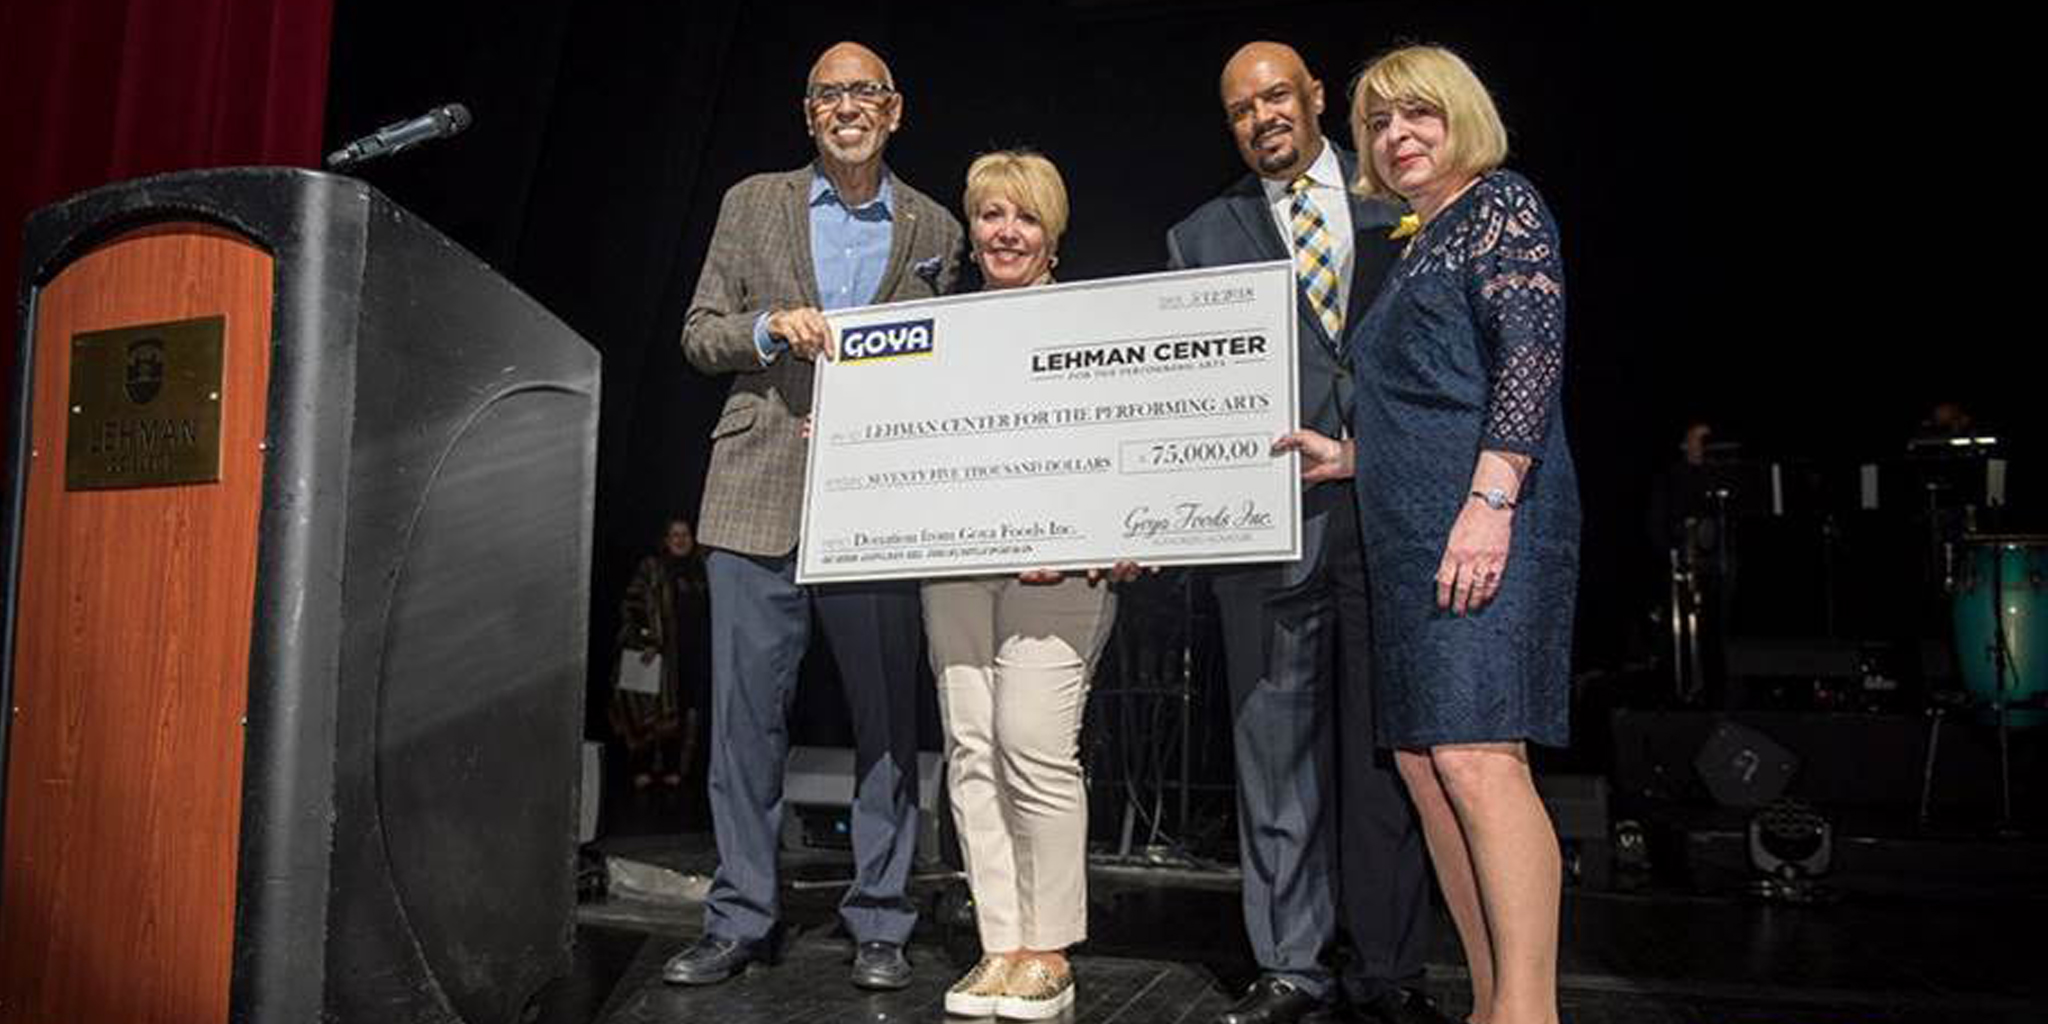 Goya Foods Announces Support of Lehman Center for the Performing Arts and Campus Food Bank